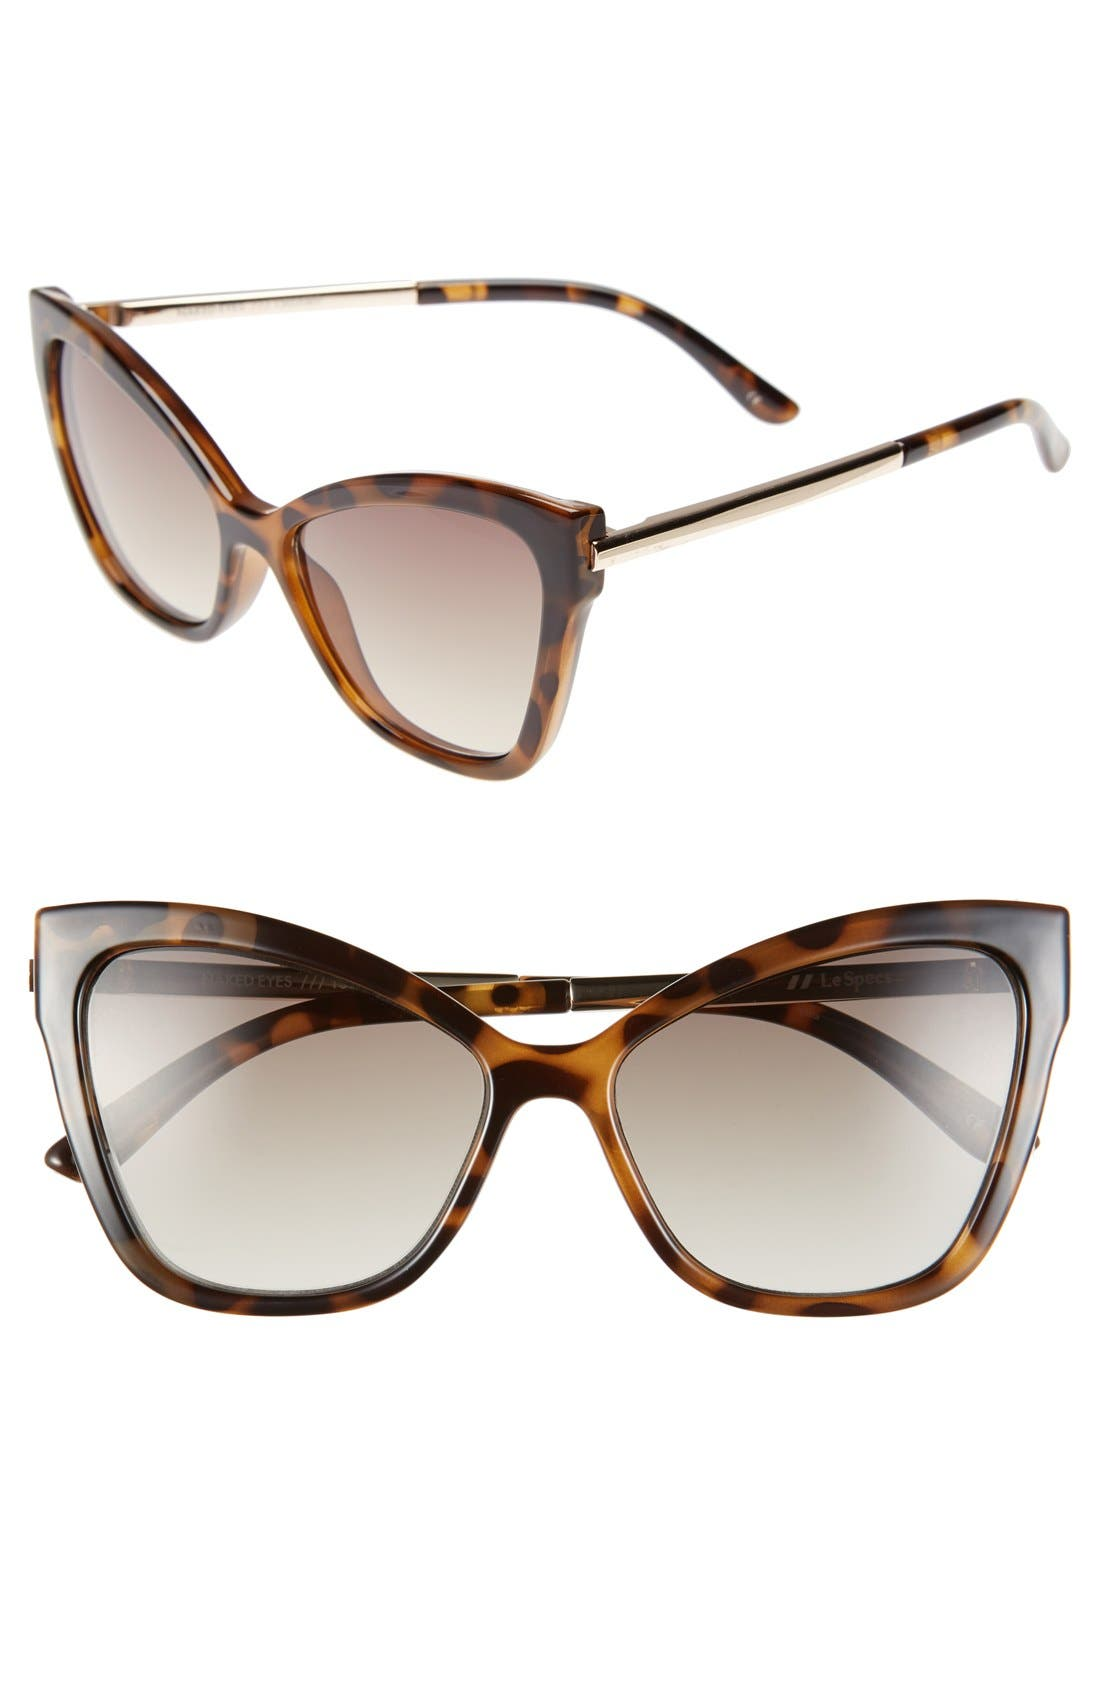 Main Image - Le Specs 'Naked Eyes' 56mm Cat Eye Sunglasses